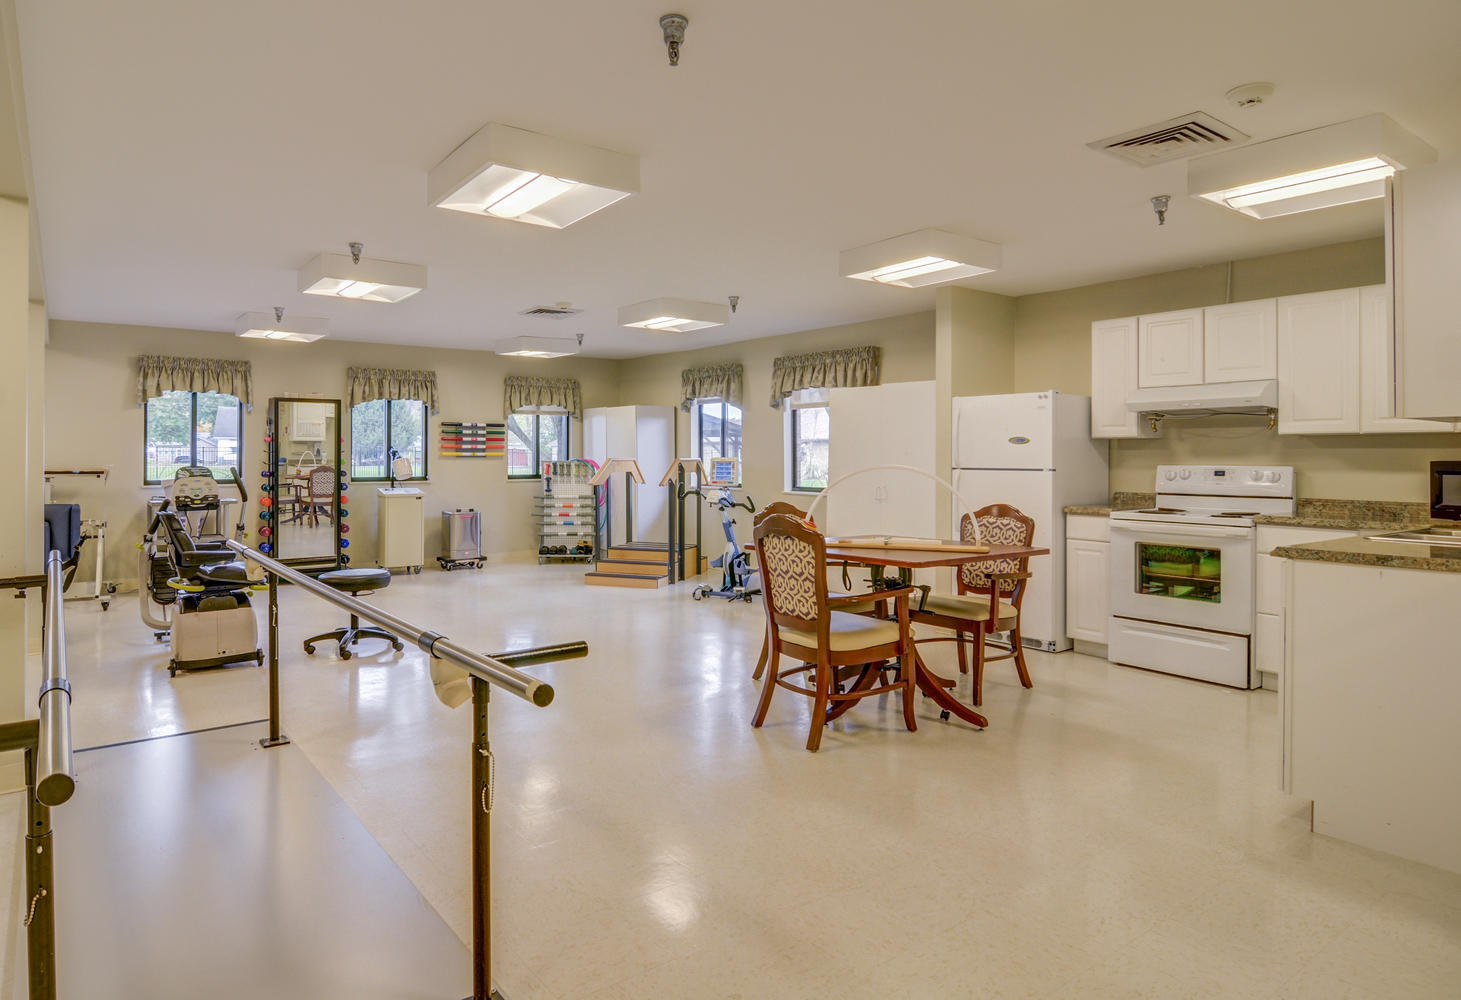 Stonerise Belmont Therapy and Rehabilitation room with equipment and kitchen area